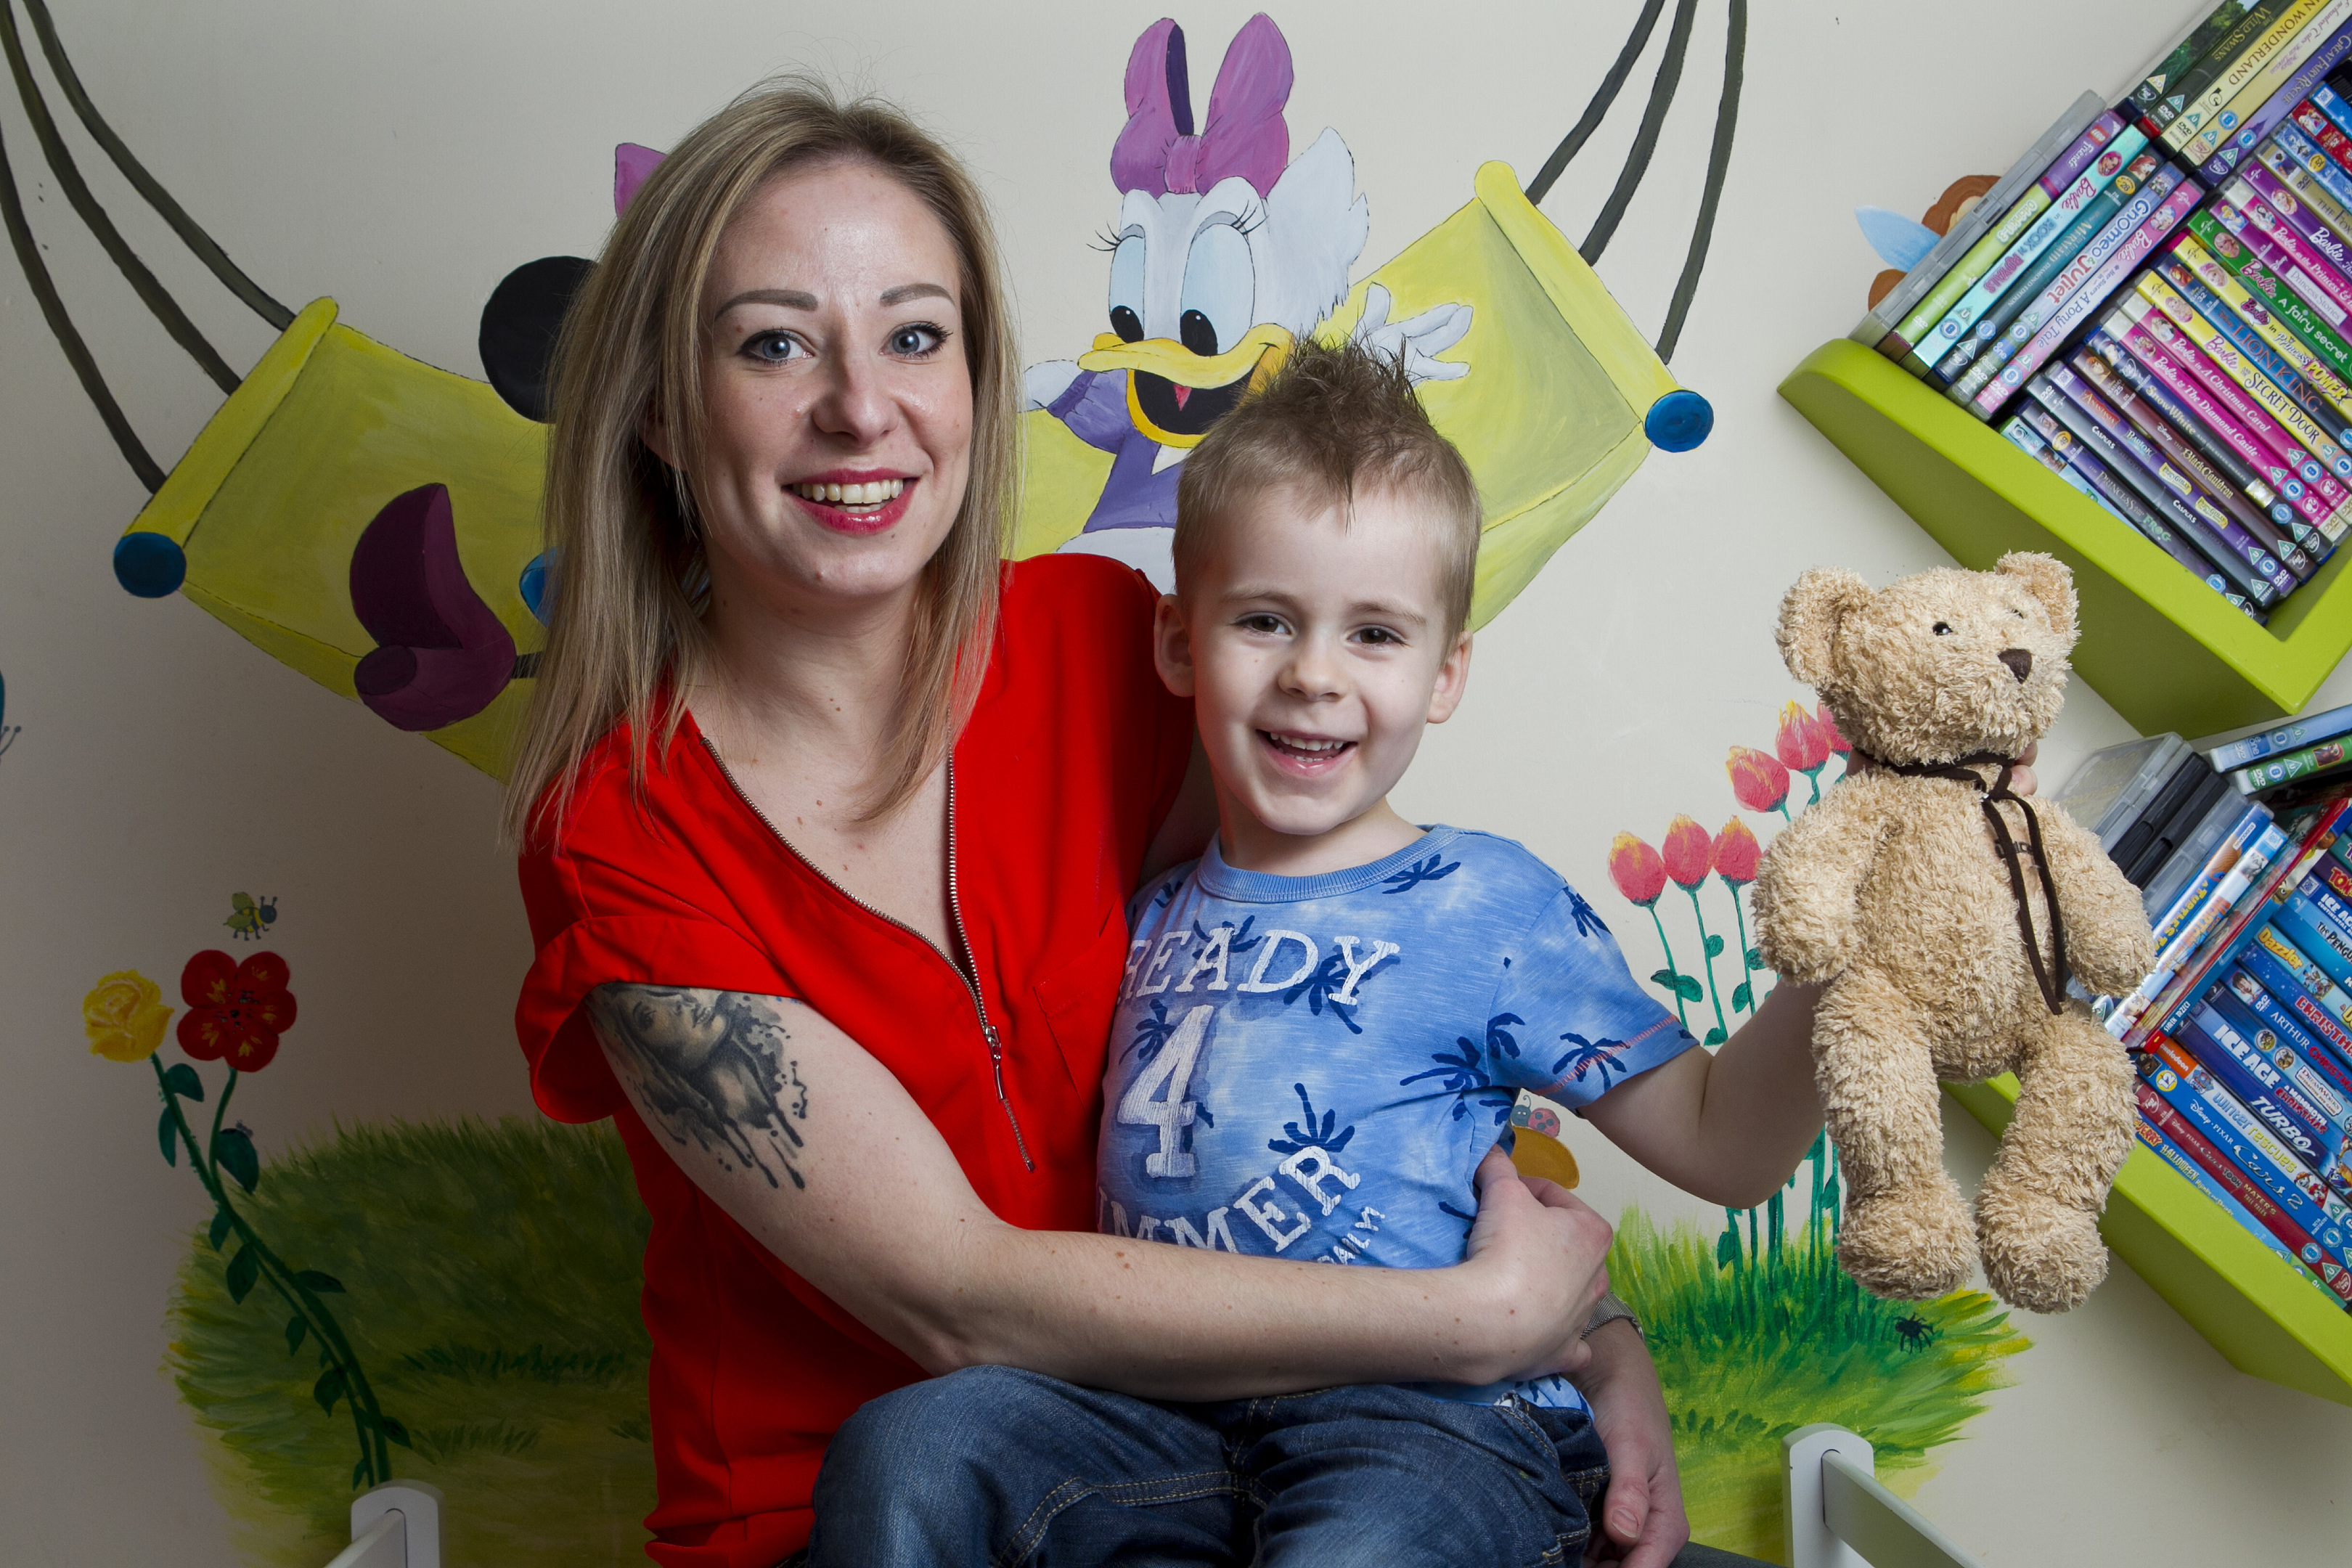 Four year old Niko with his mother Magda (Andrew Cawley / DC Thomson)